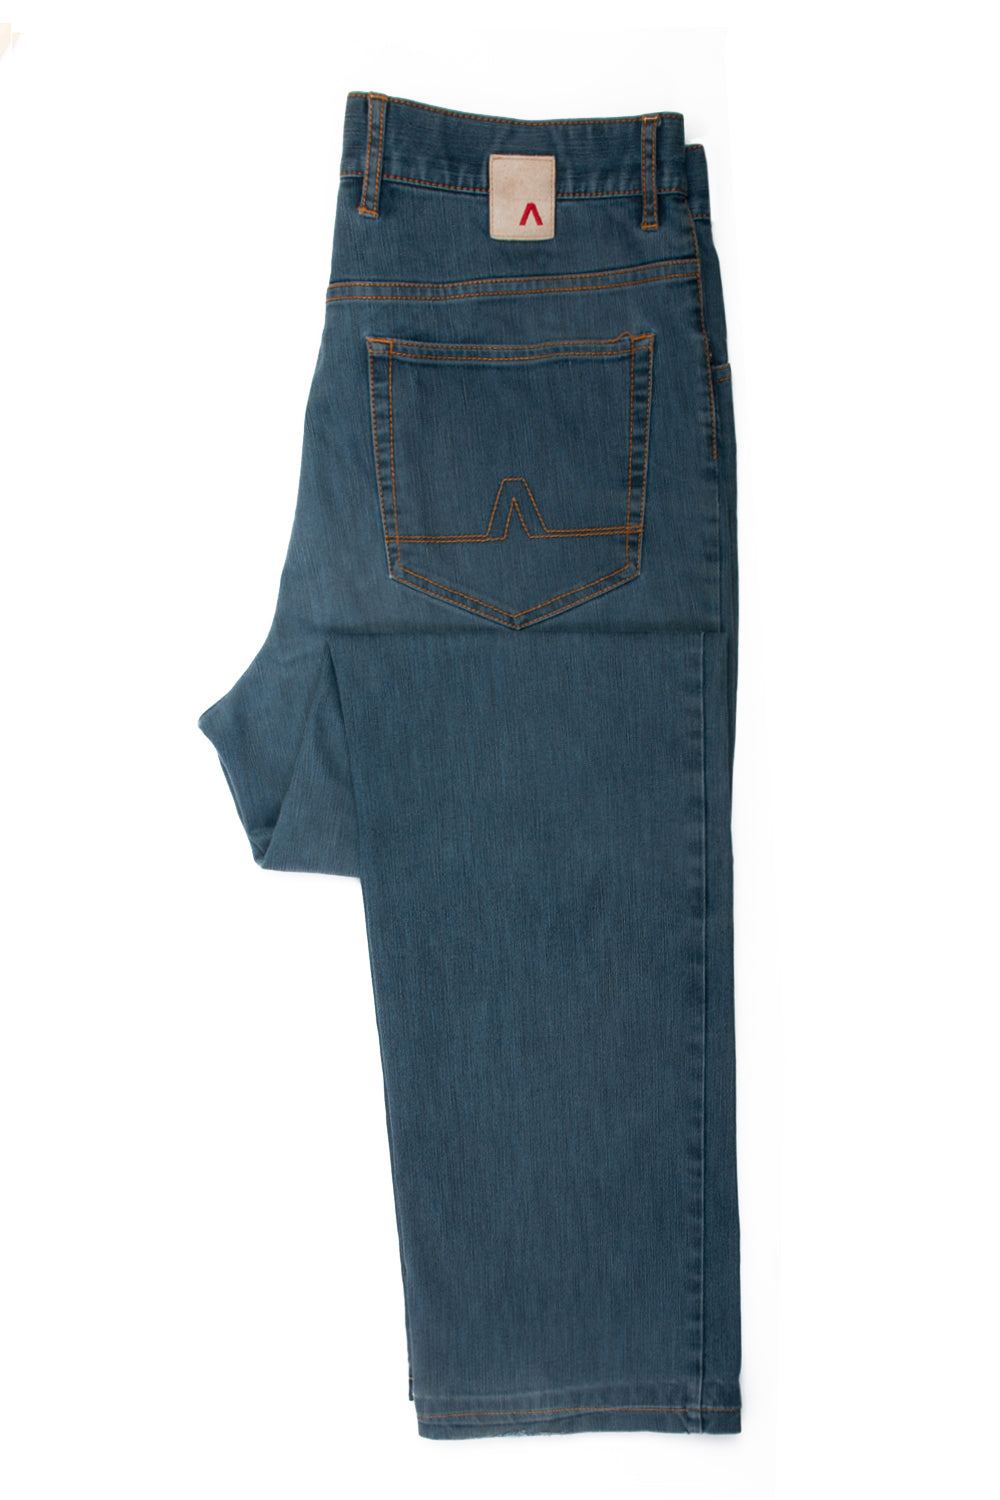 Alberto Slate Blue Tommy Coolmax Denim Jeans for Luxmrkt.com Menswear Consignment Edmonton